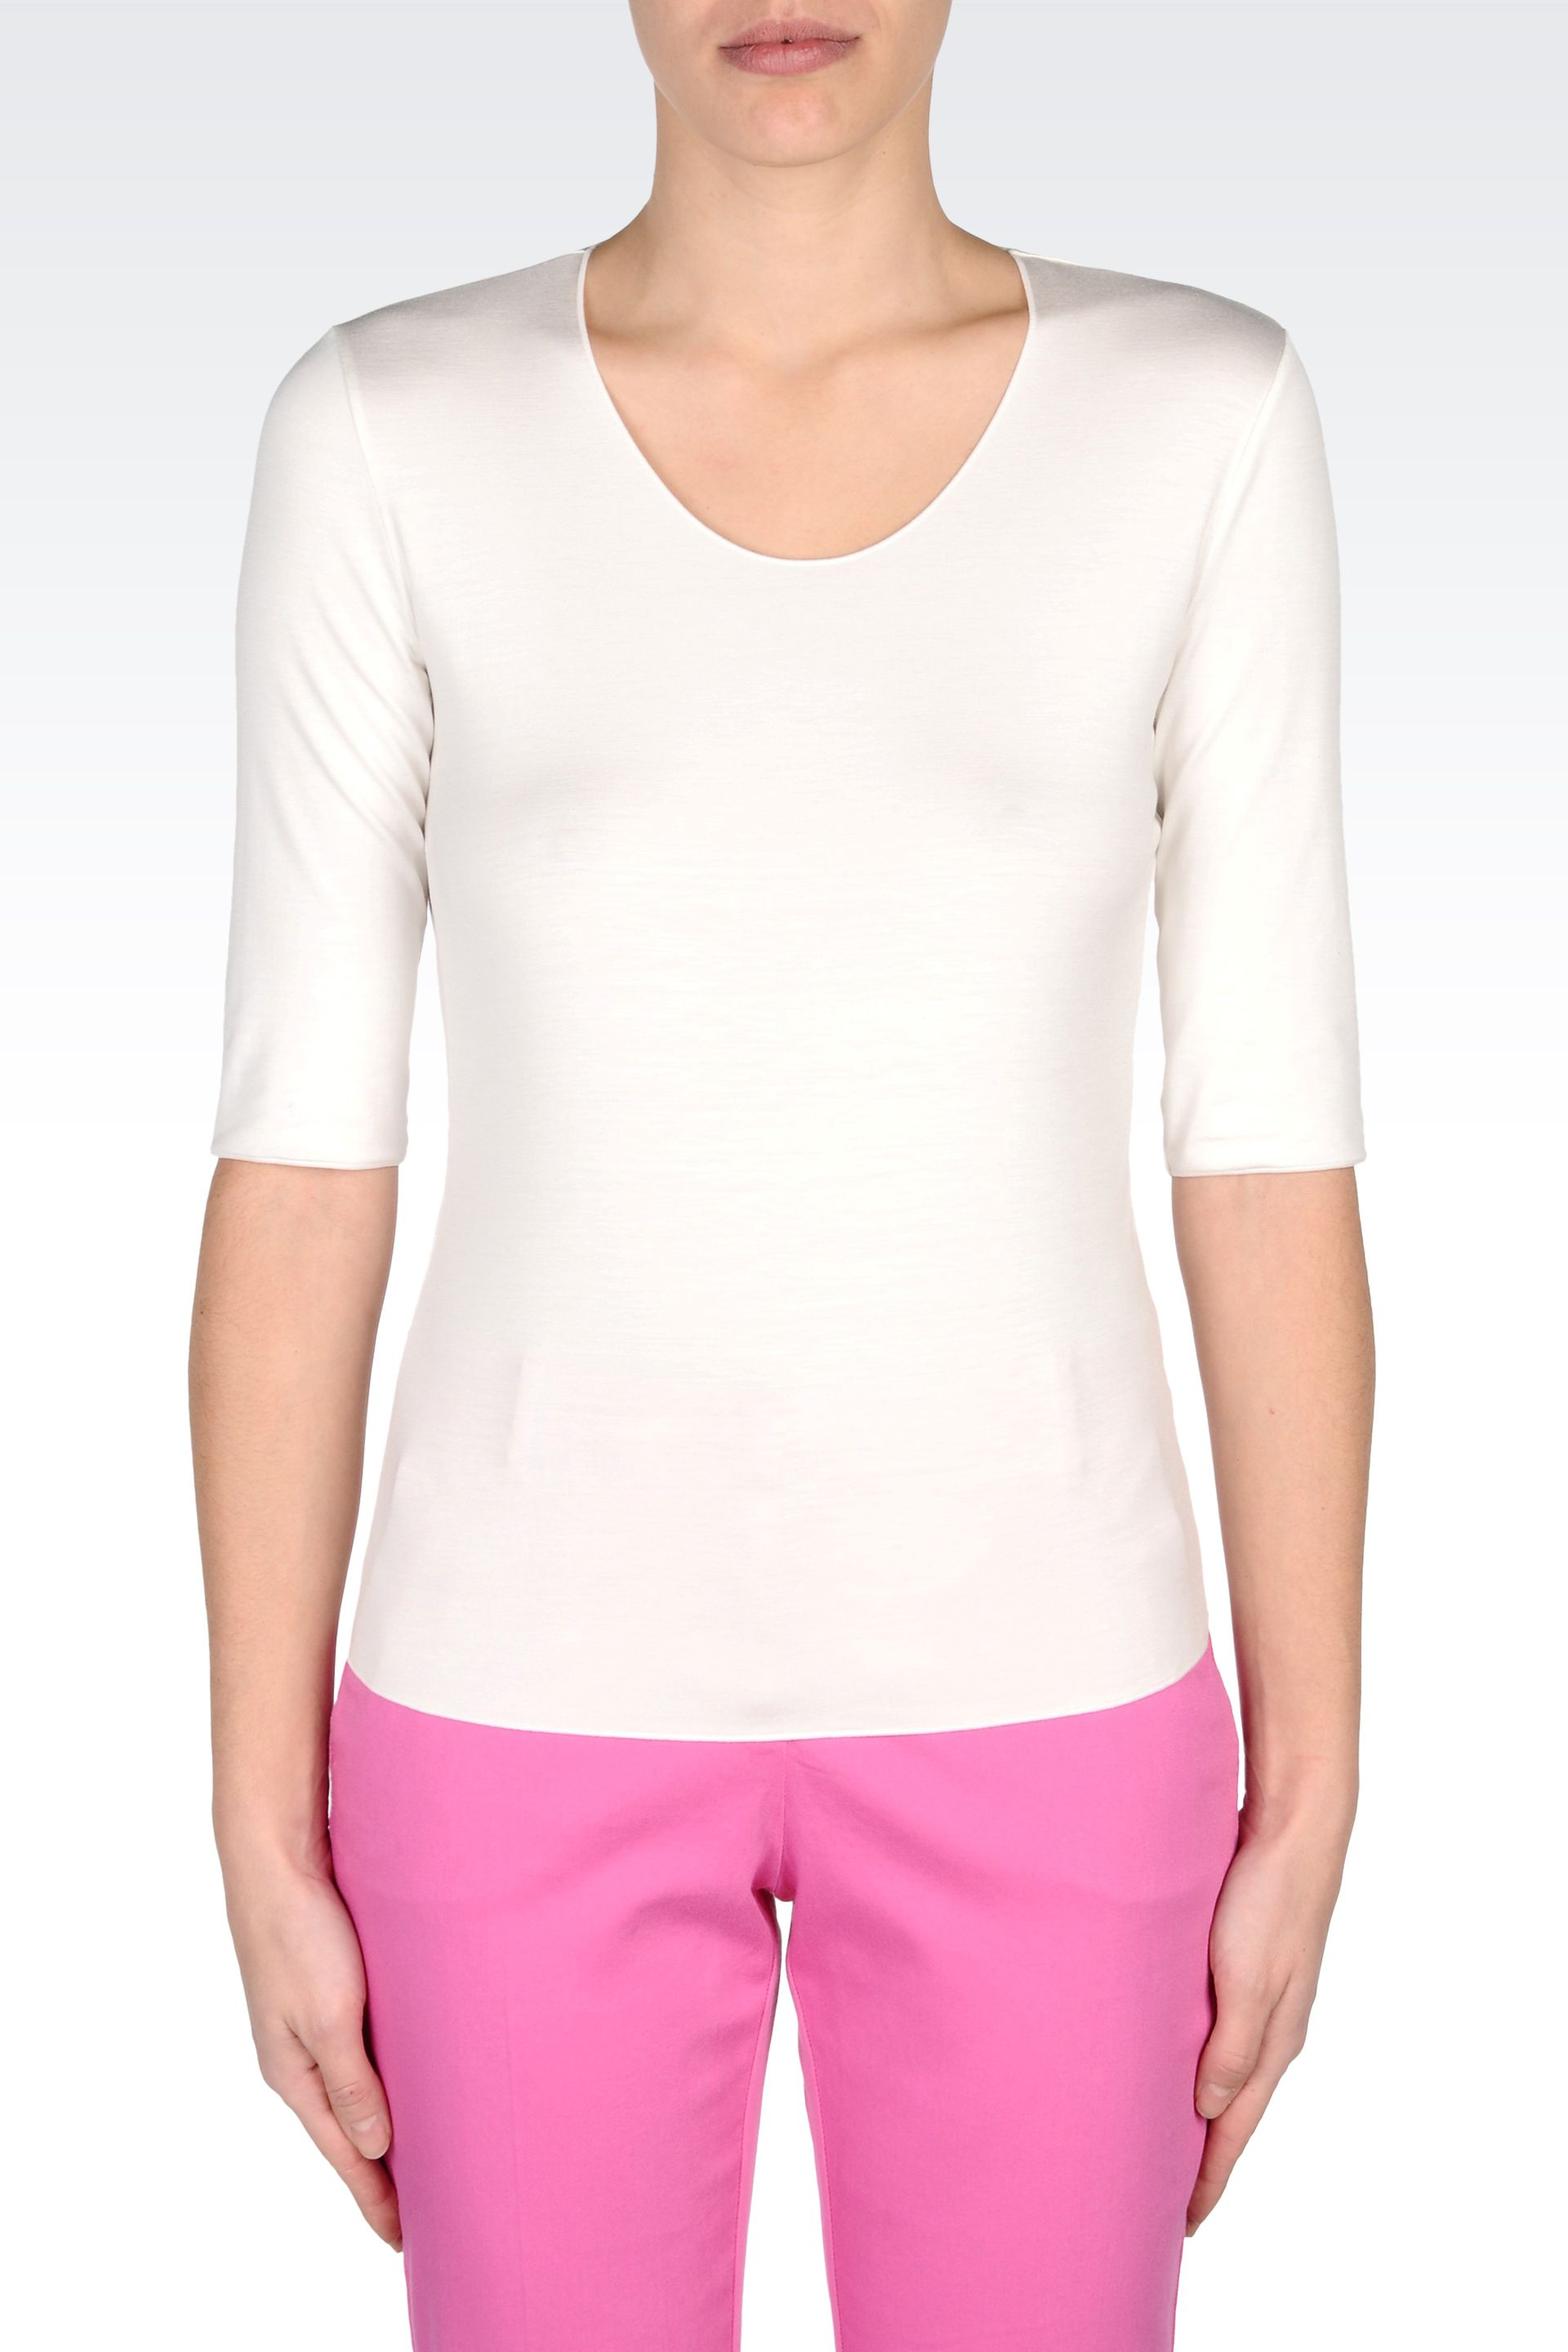 Armani Viscose Tshirt With Elbow Length Sleeves In White